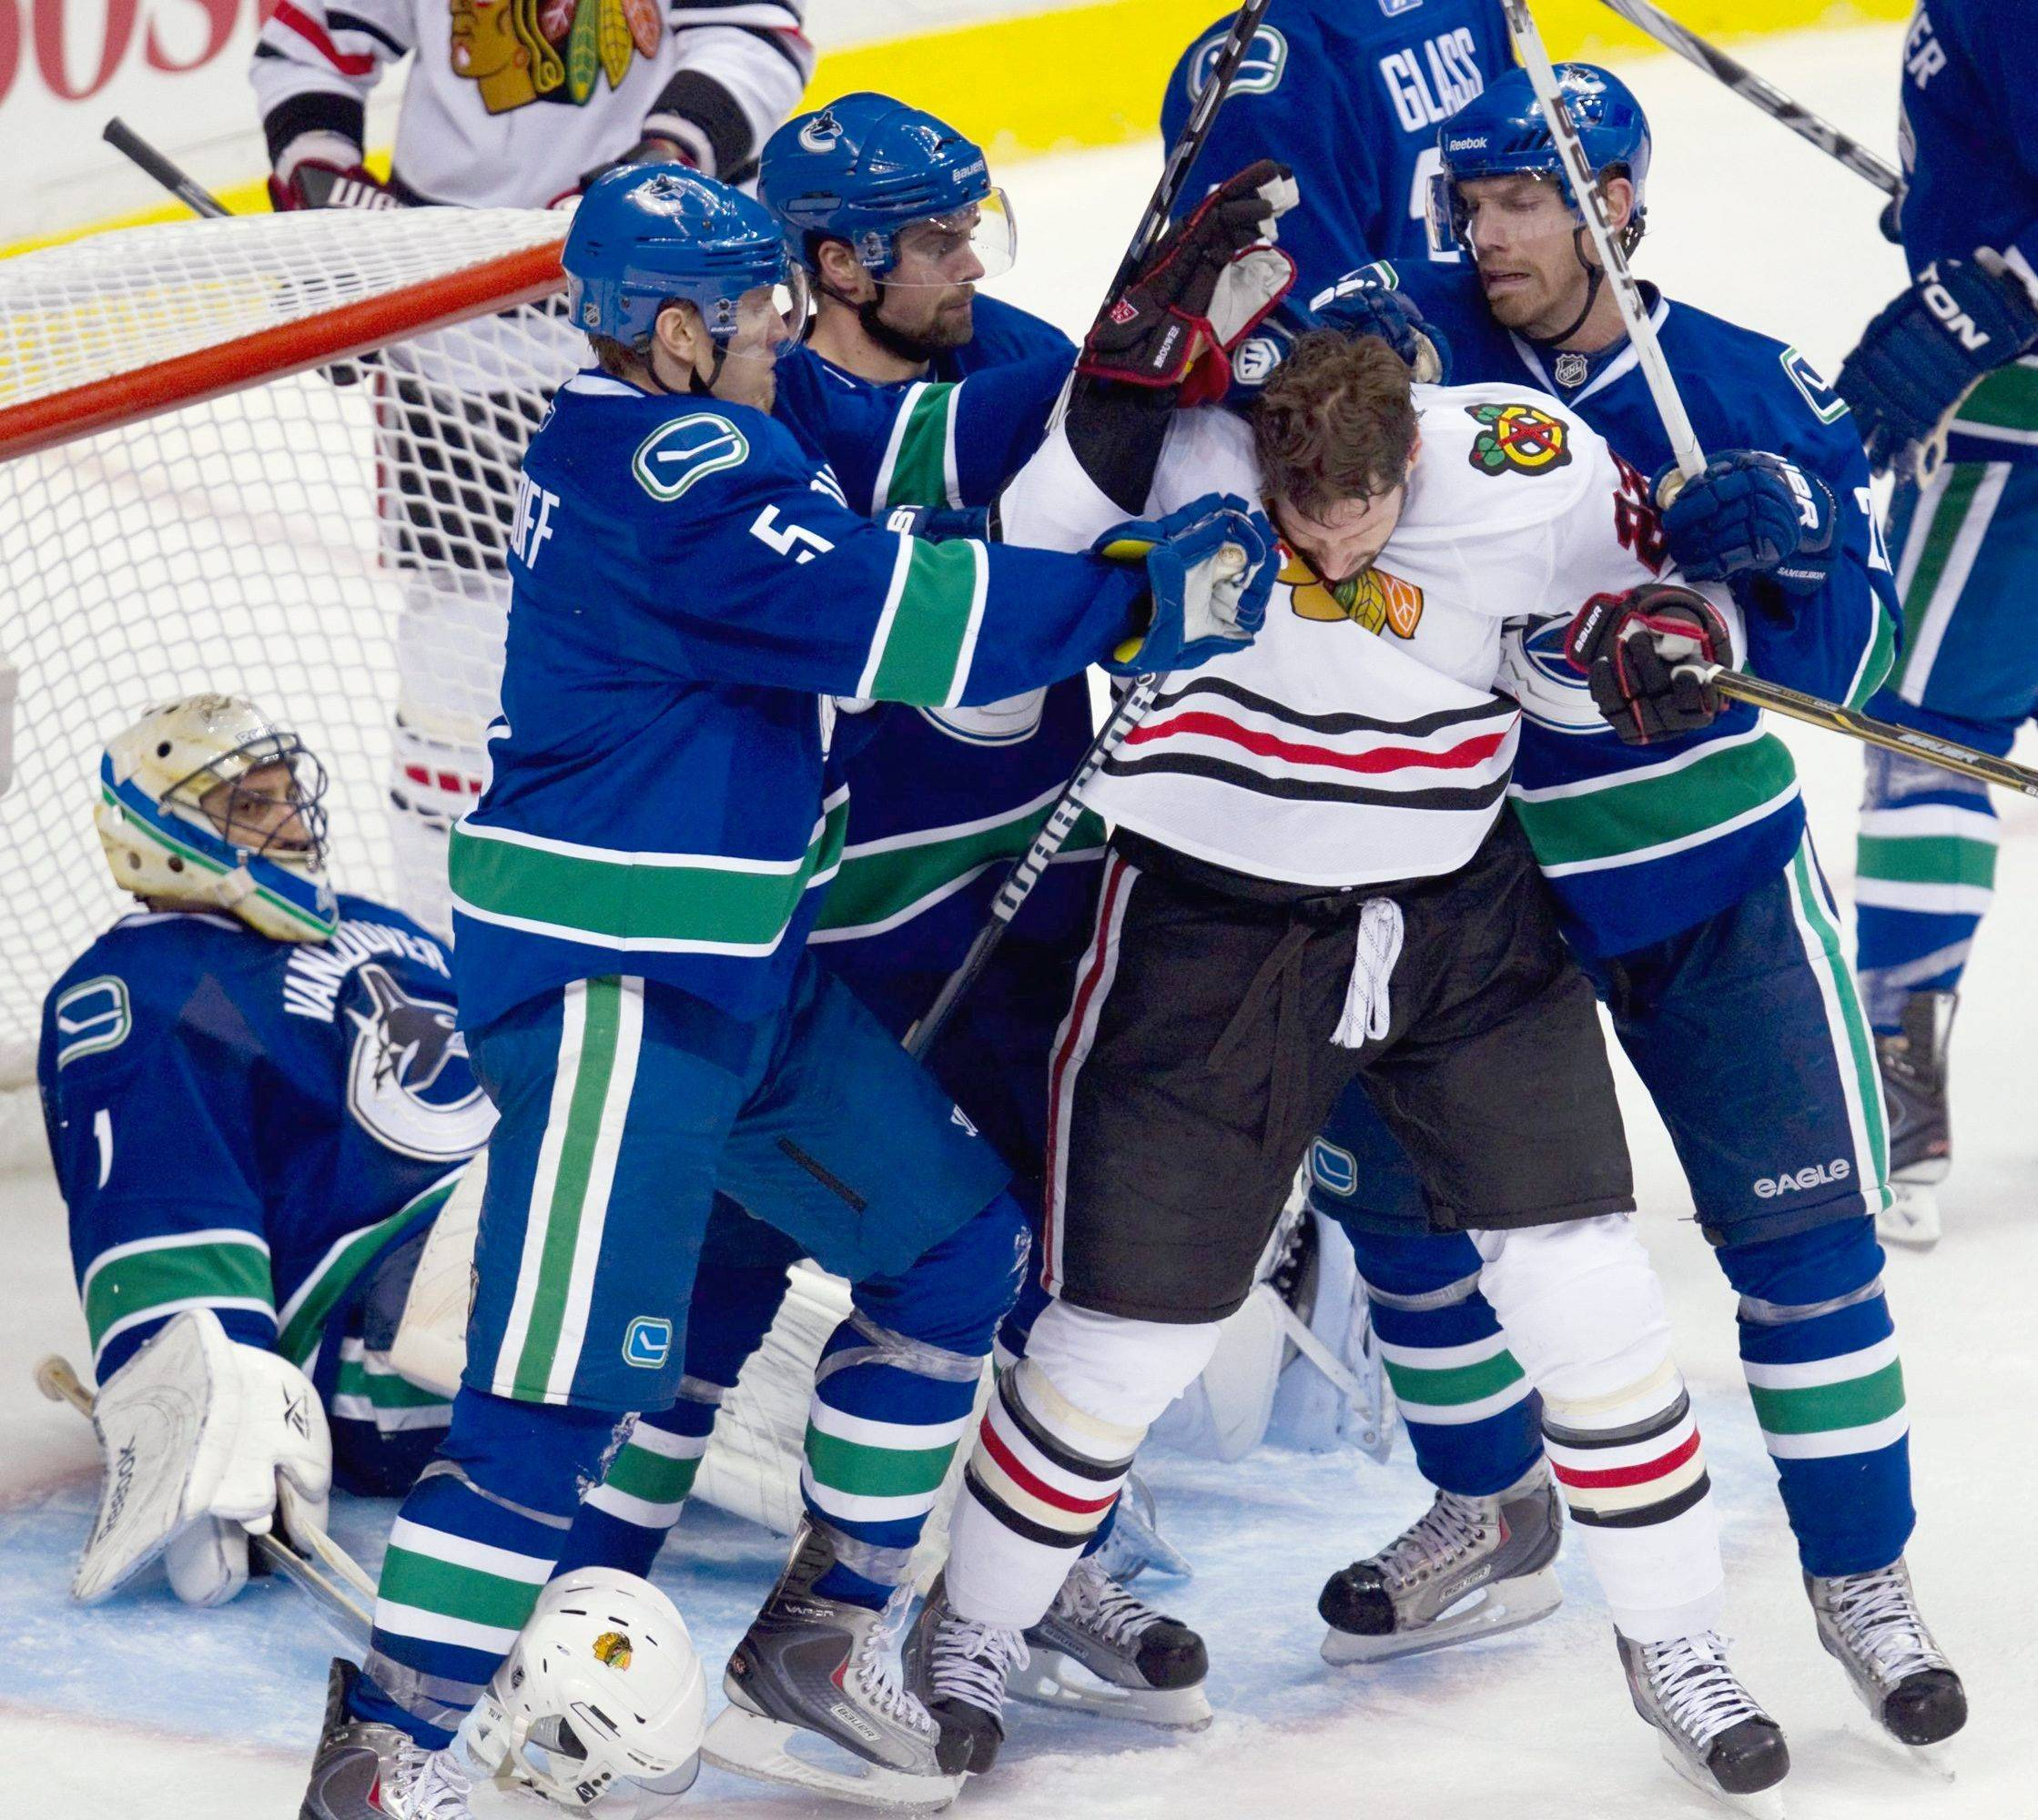 Vancouver Canucks goaltender Roberto Luongo, left, looks on as teammates Christian Ehrhoff, Dan Hamhuis, and Mikael Samuelsson try to clear Chicago Blackhawks' Troy Brouwer from in front of their net during the second period of Game 7 Tuesday.